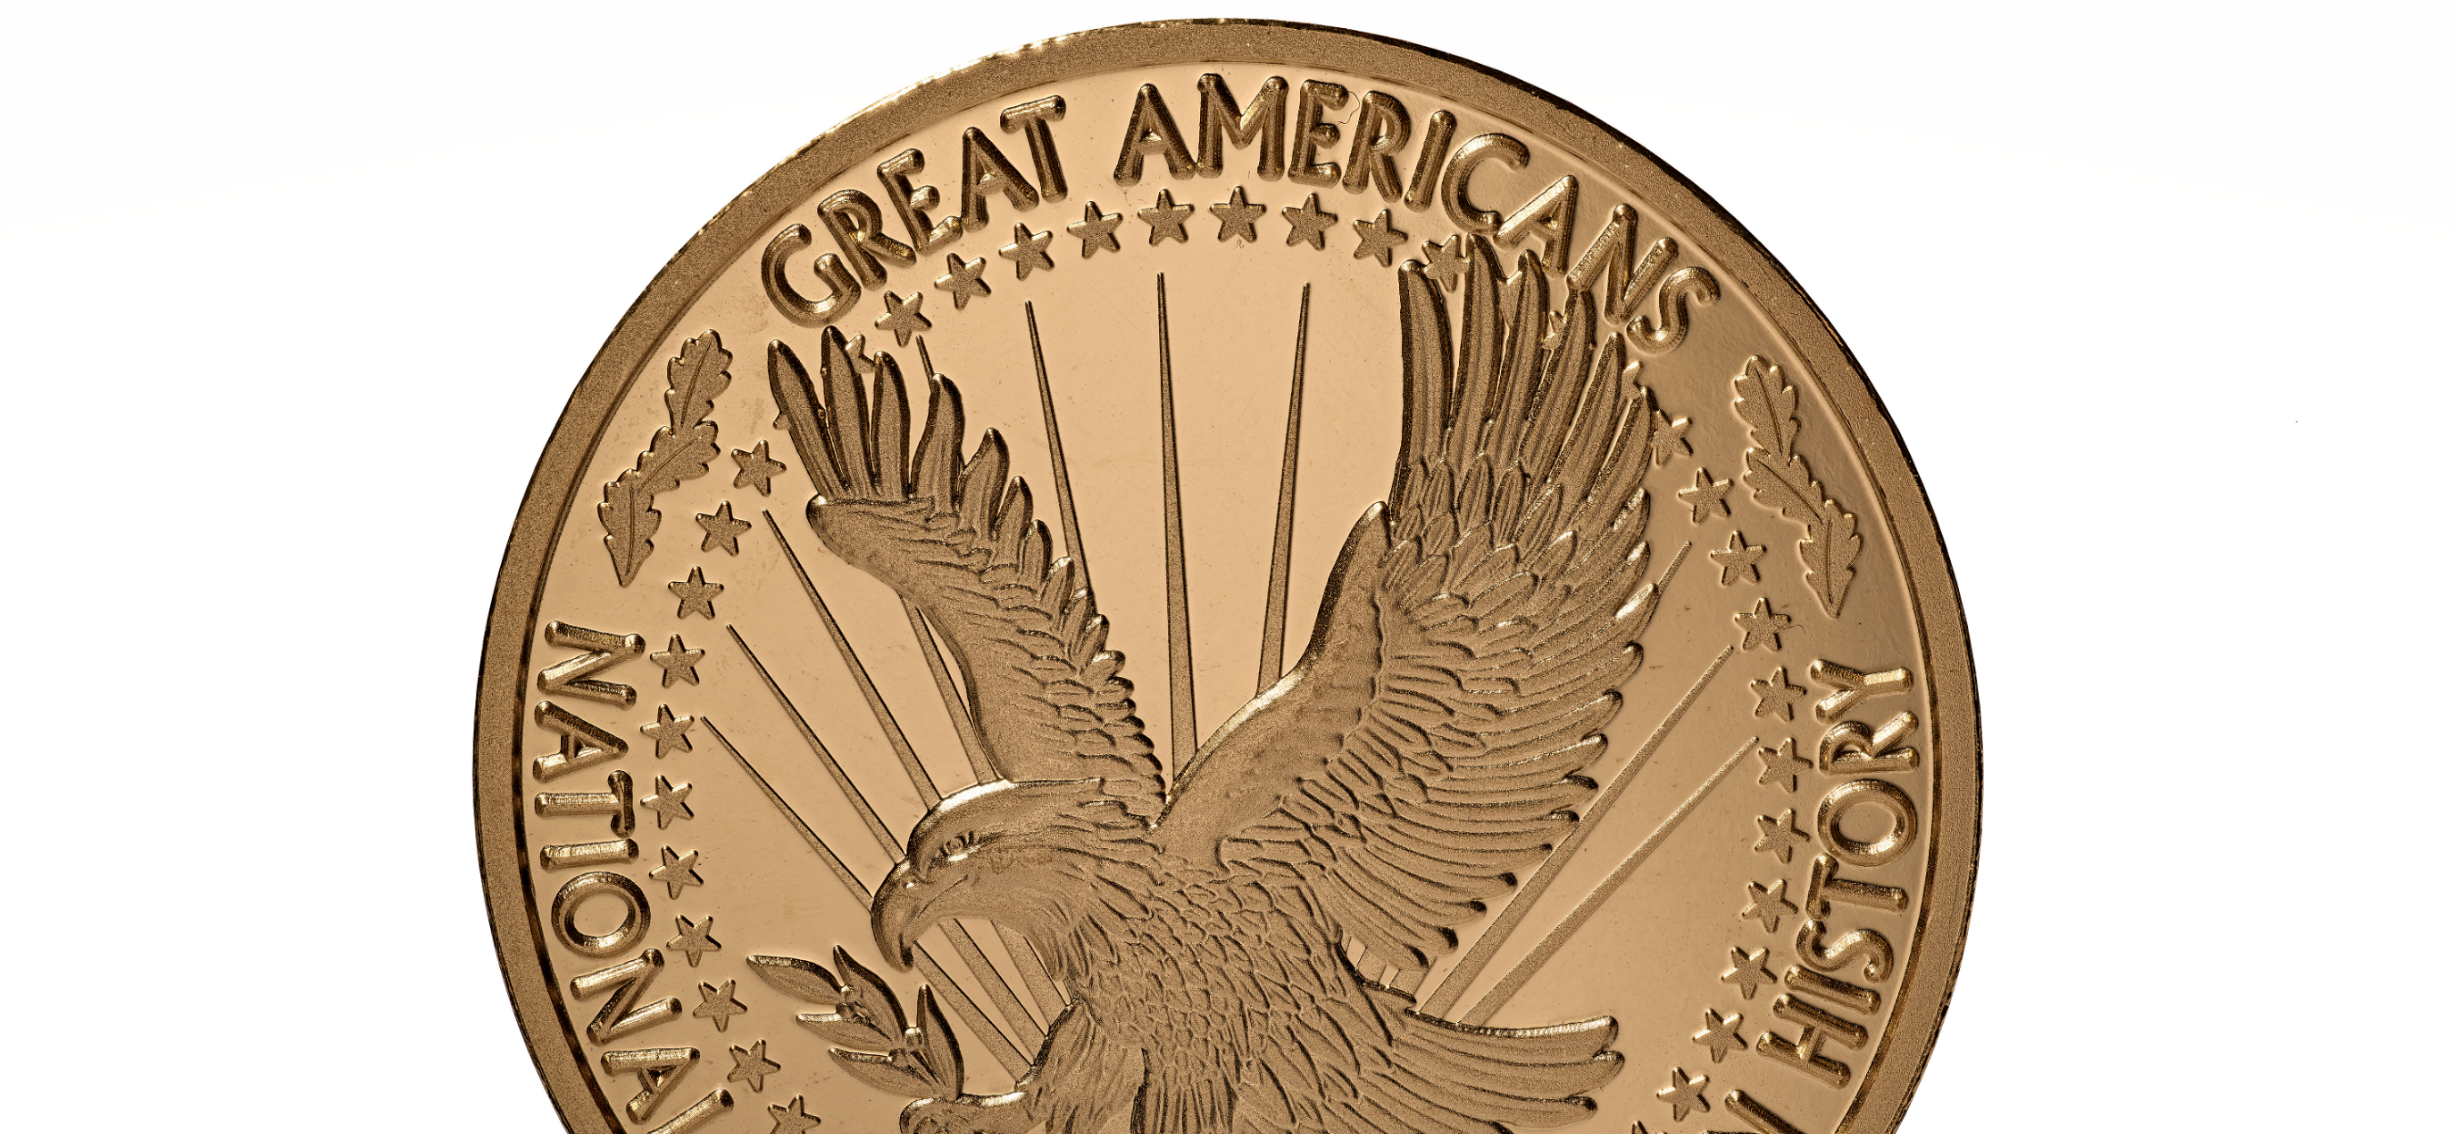 The Great Americans Medal